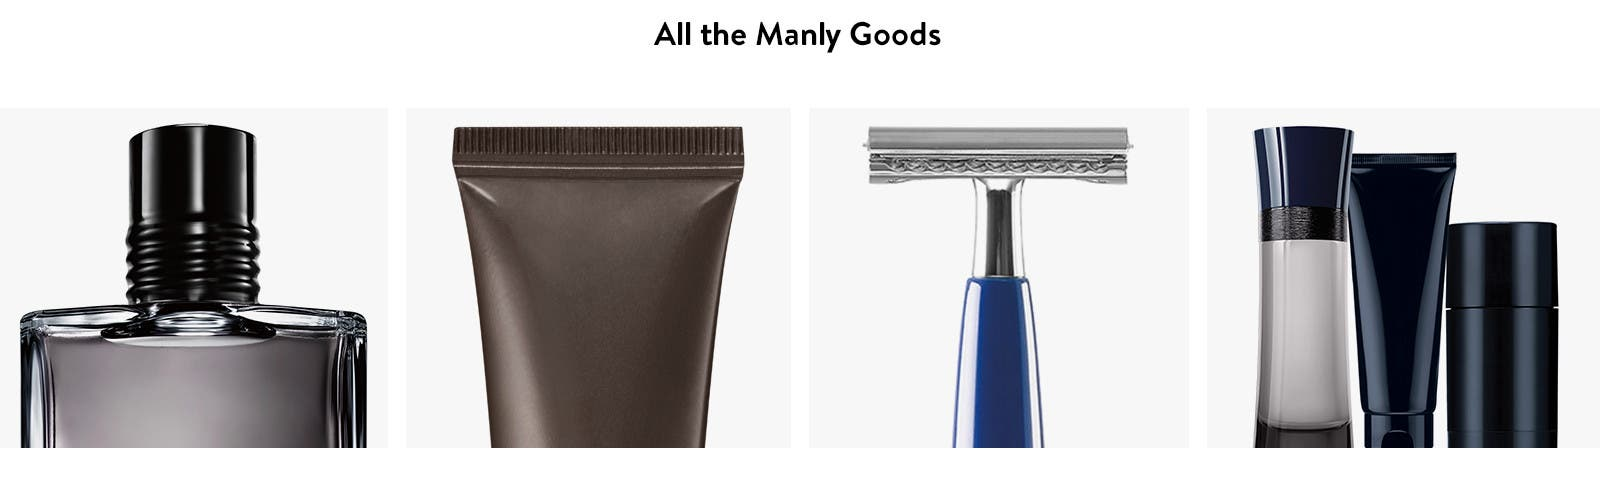 All the Manly Goods.